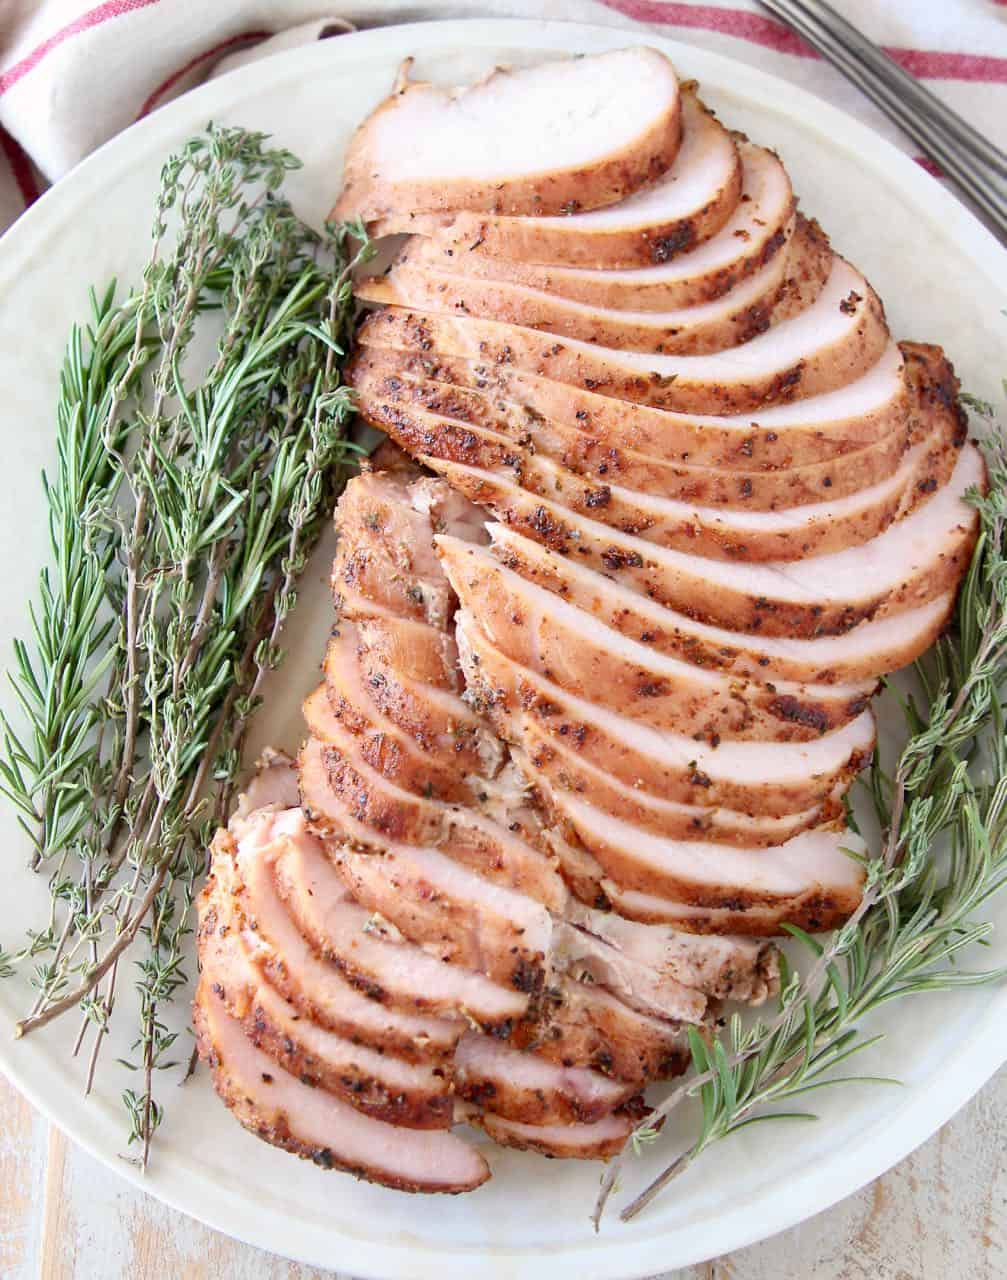 Slices of smoked turkey breast meat on plate with fresh herbs